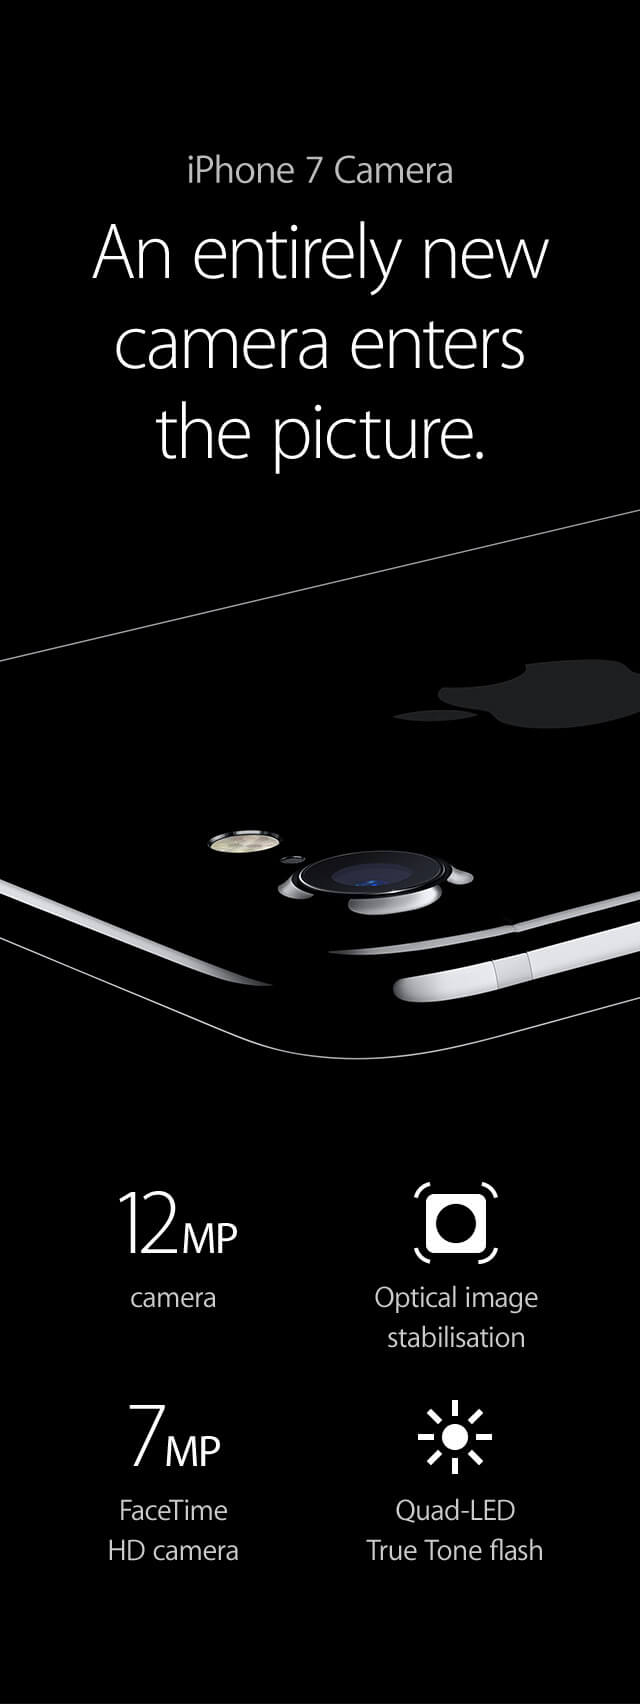 iPhone 7 Camera. An entirely new camera enters the picture.